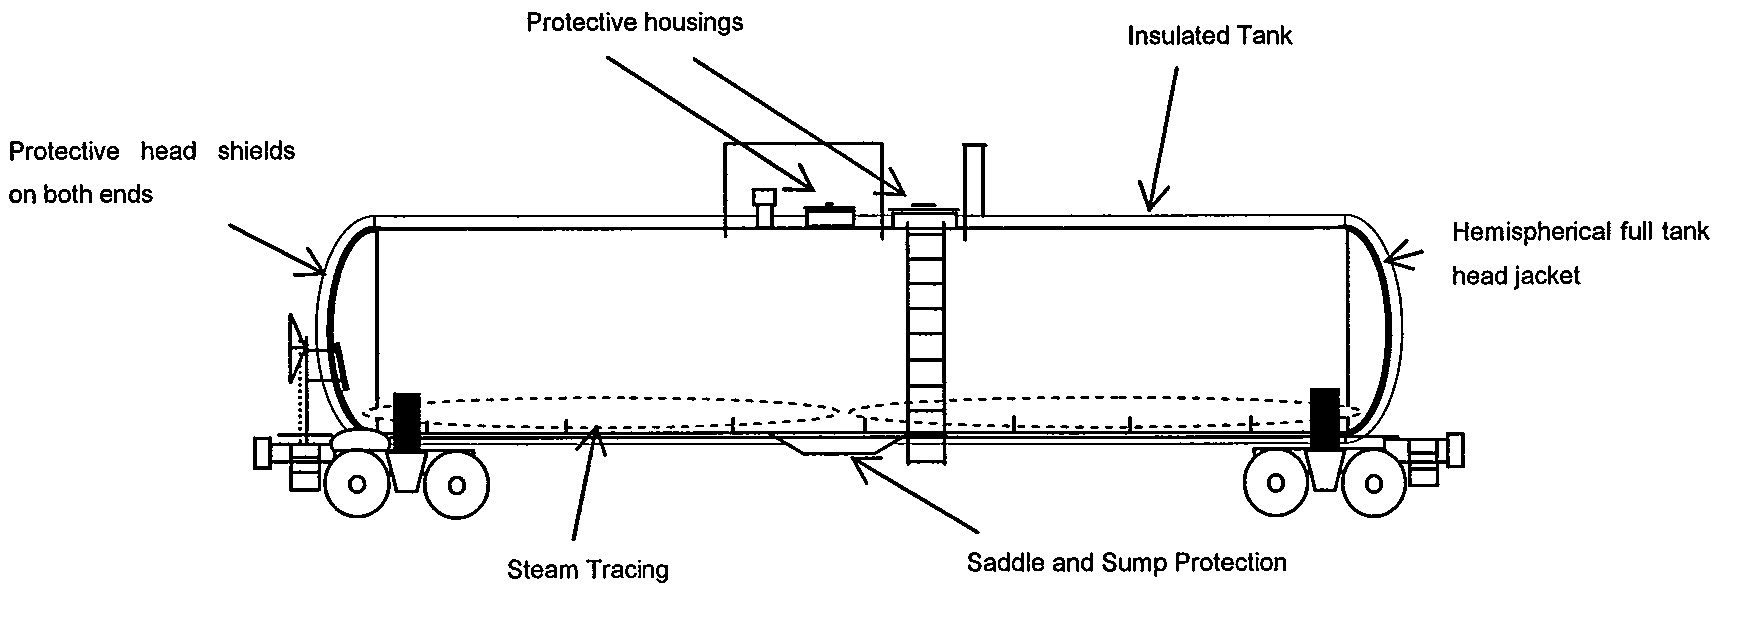 Propane Tank Valve Parts Diagram Electrical Wiring Schematic Railroad Car Top Free Engine Opd House Valves